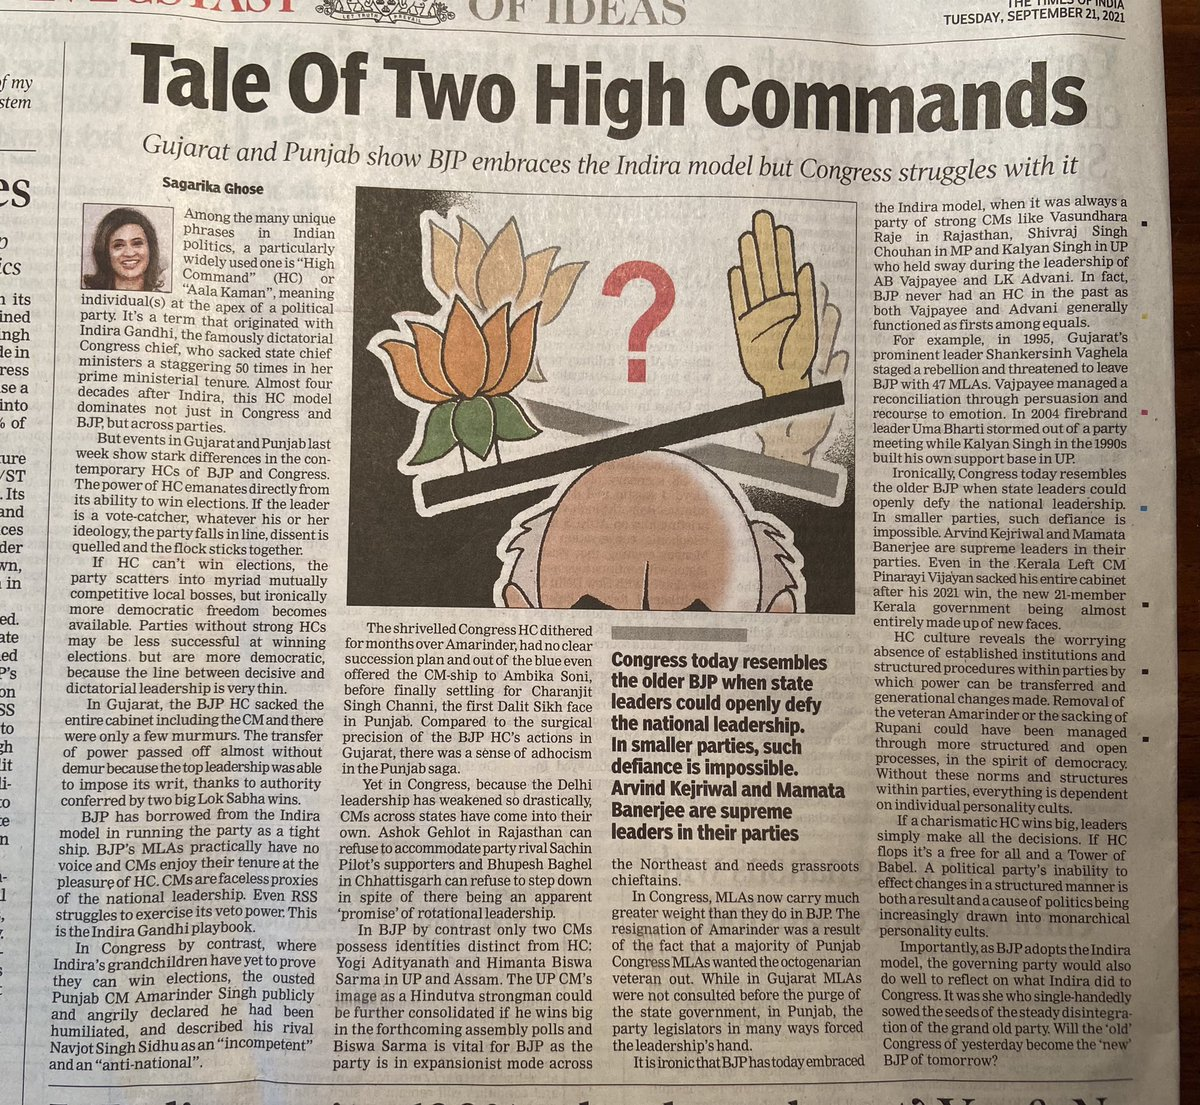 @sagarikaghose: A tale of two High Commands. @BJP4India embraces the Indira Gandhi model in sacking chief ministers but must pause to consider: Indira was a supreme and popular leader but set her party on course for irreversible disintegration. My oped in @timesofindia